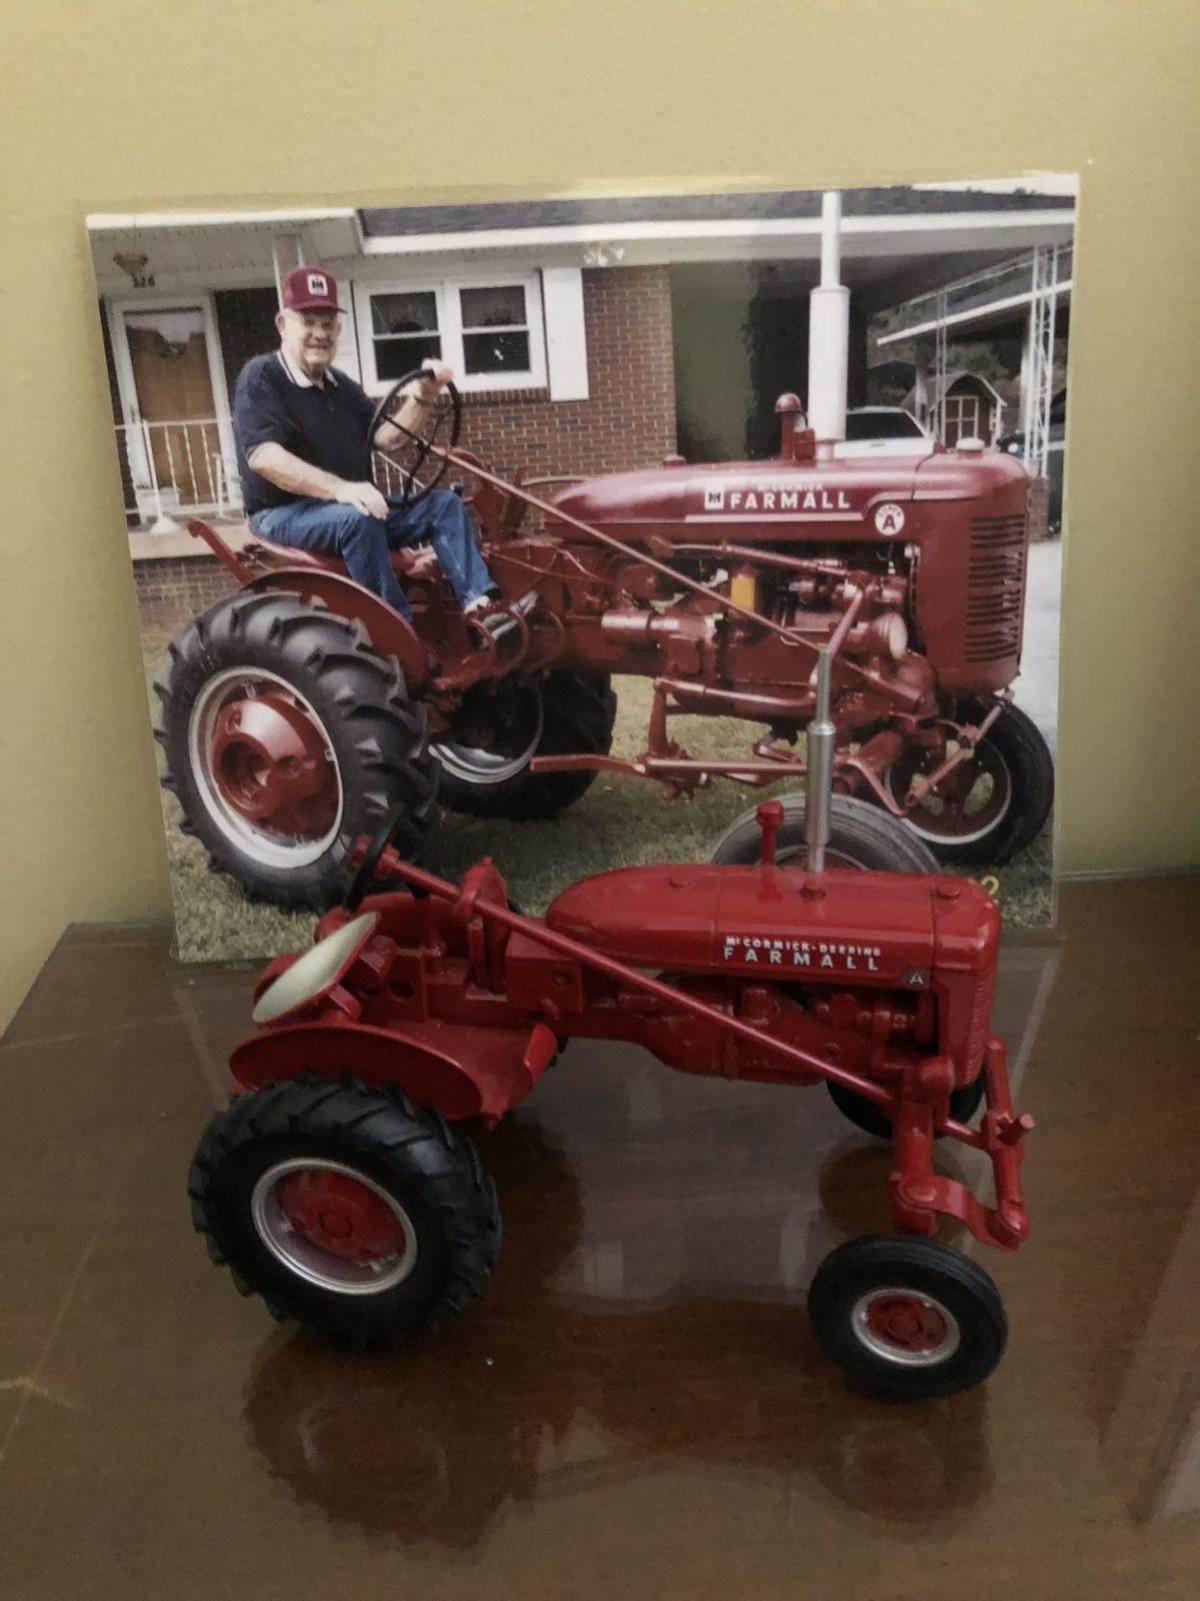 A photo of Ray Kidd on his restored Farmall tractor and a die-cast model of a Farmall